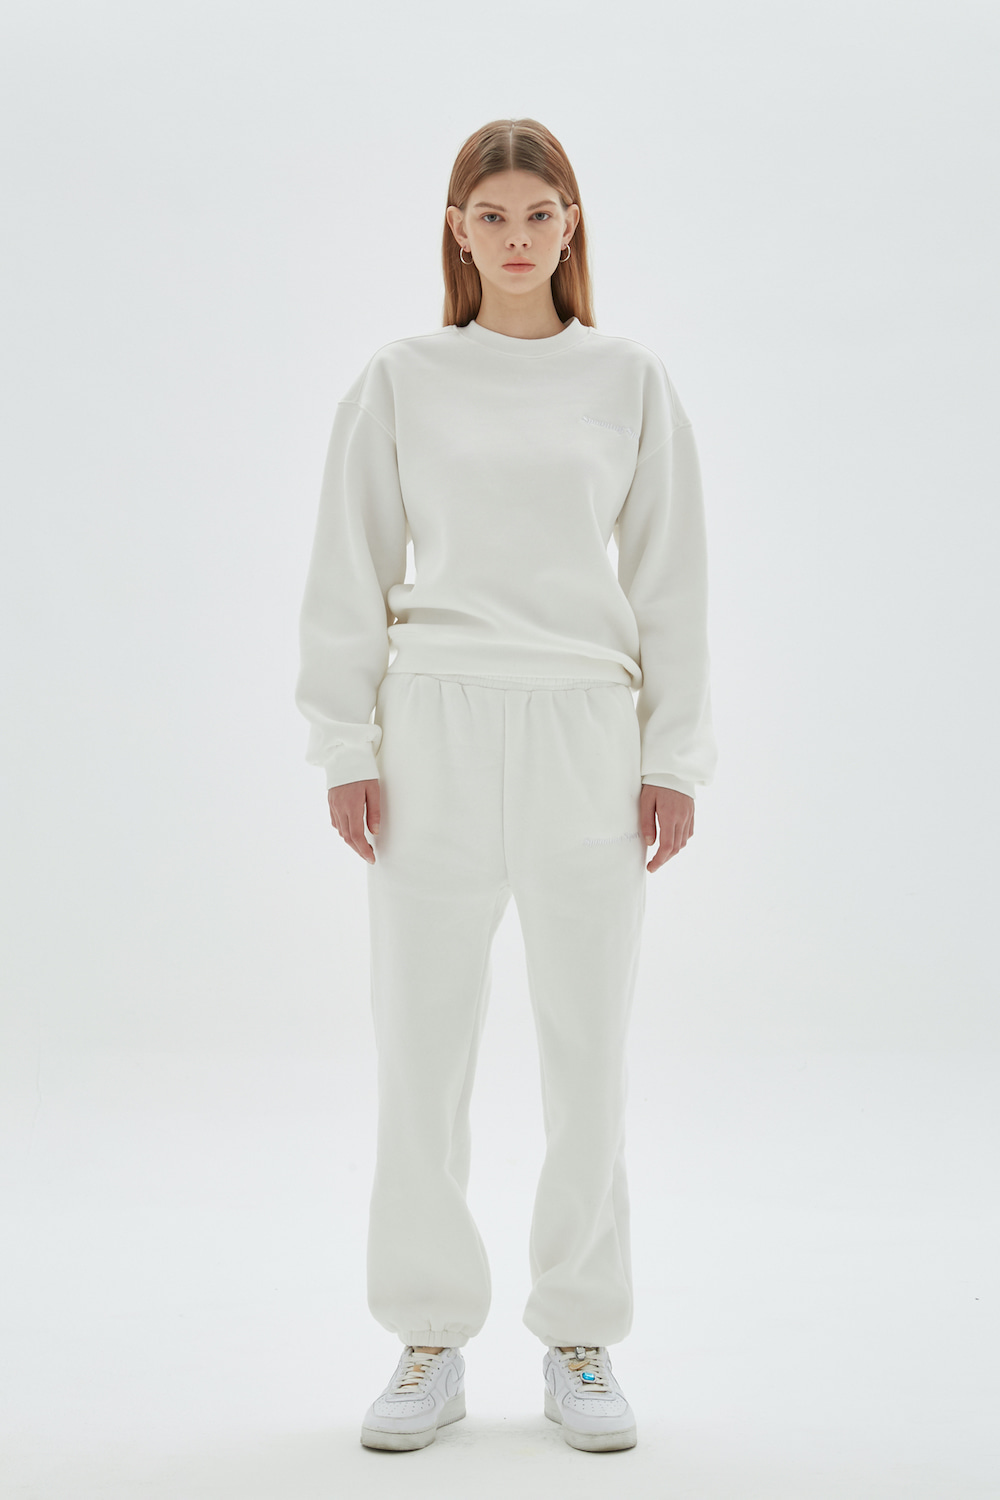 [DROP 3 / SHIP AFTER 1/29~] SPOONING SPORT SWEATPANTS